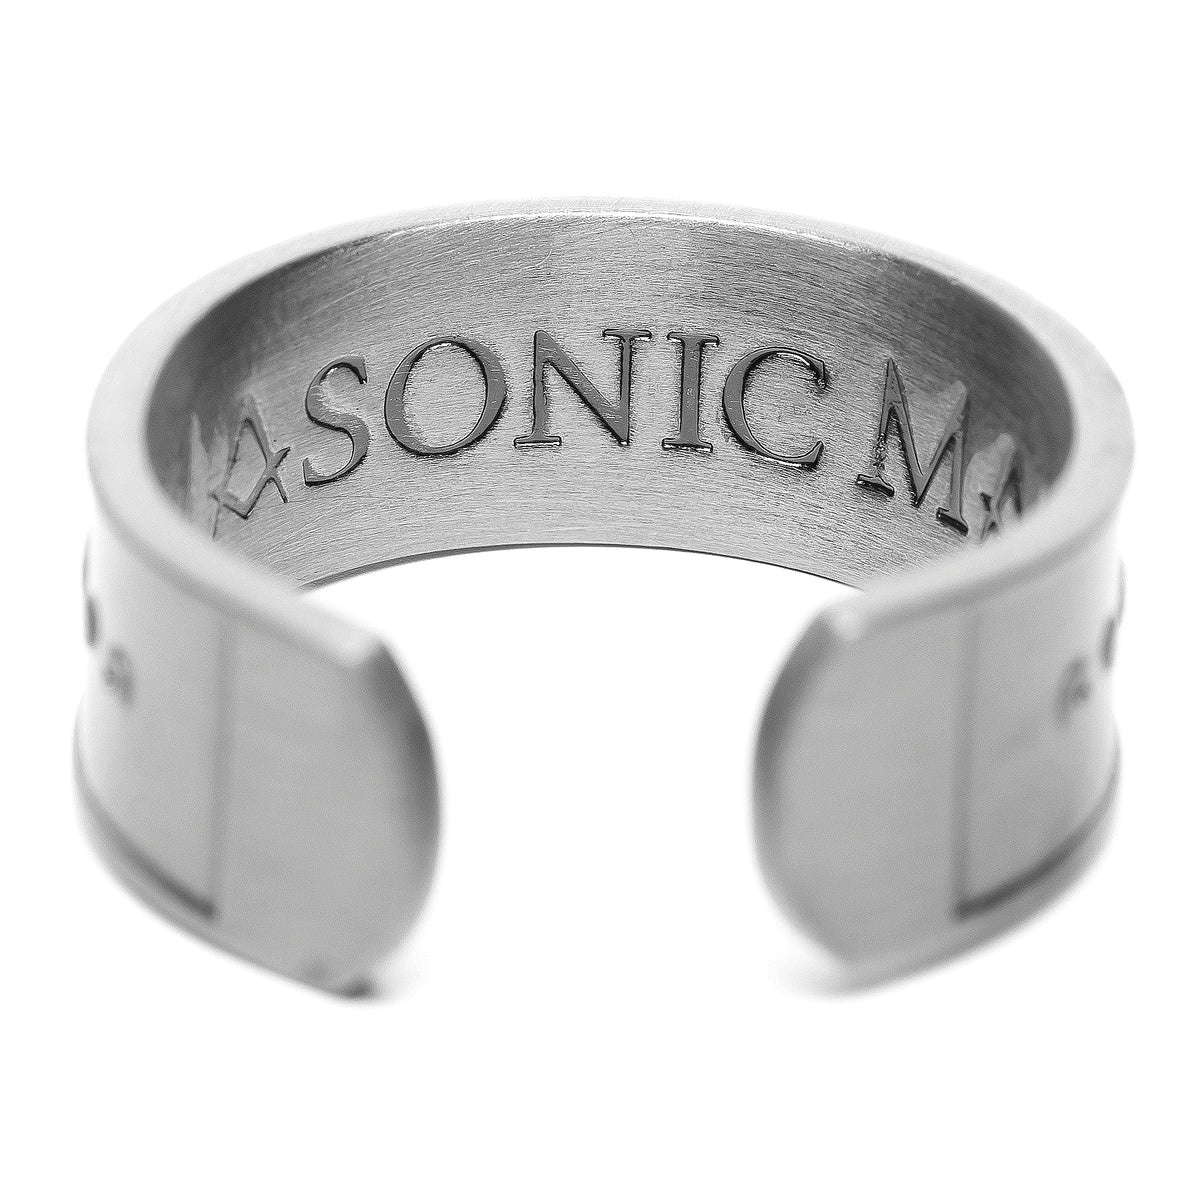 MasonicMan Pure Copper Ring